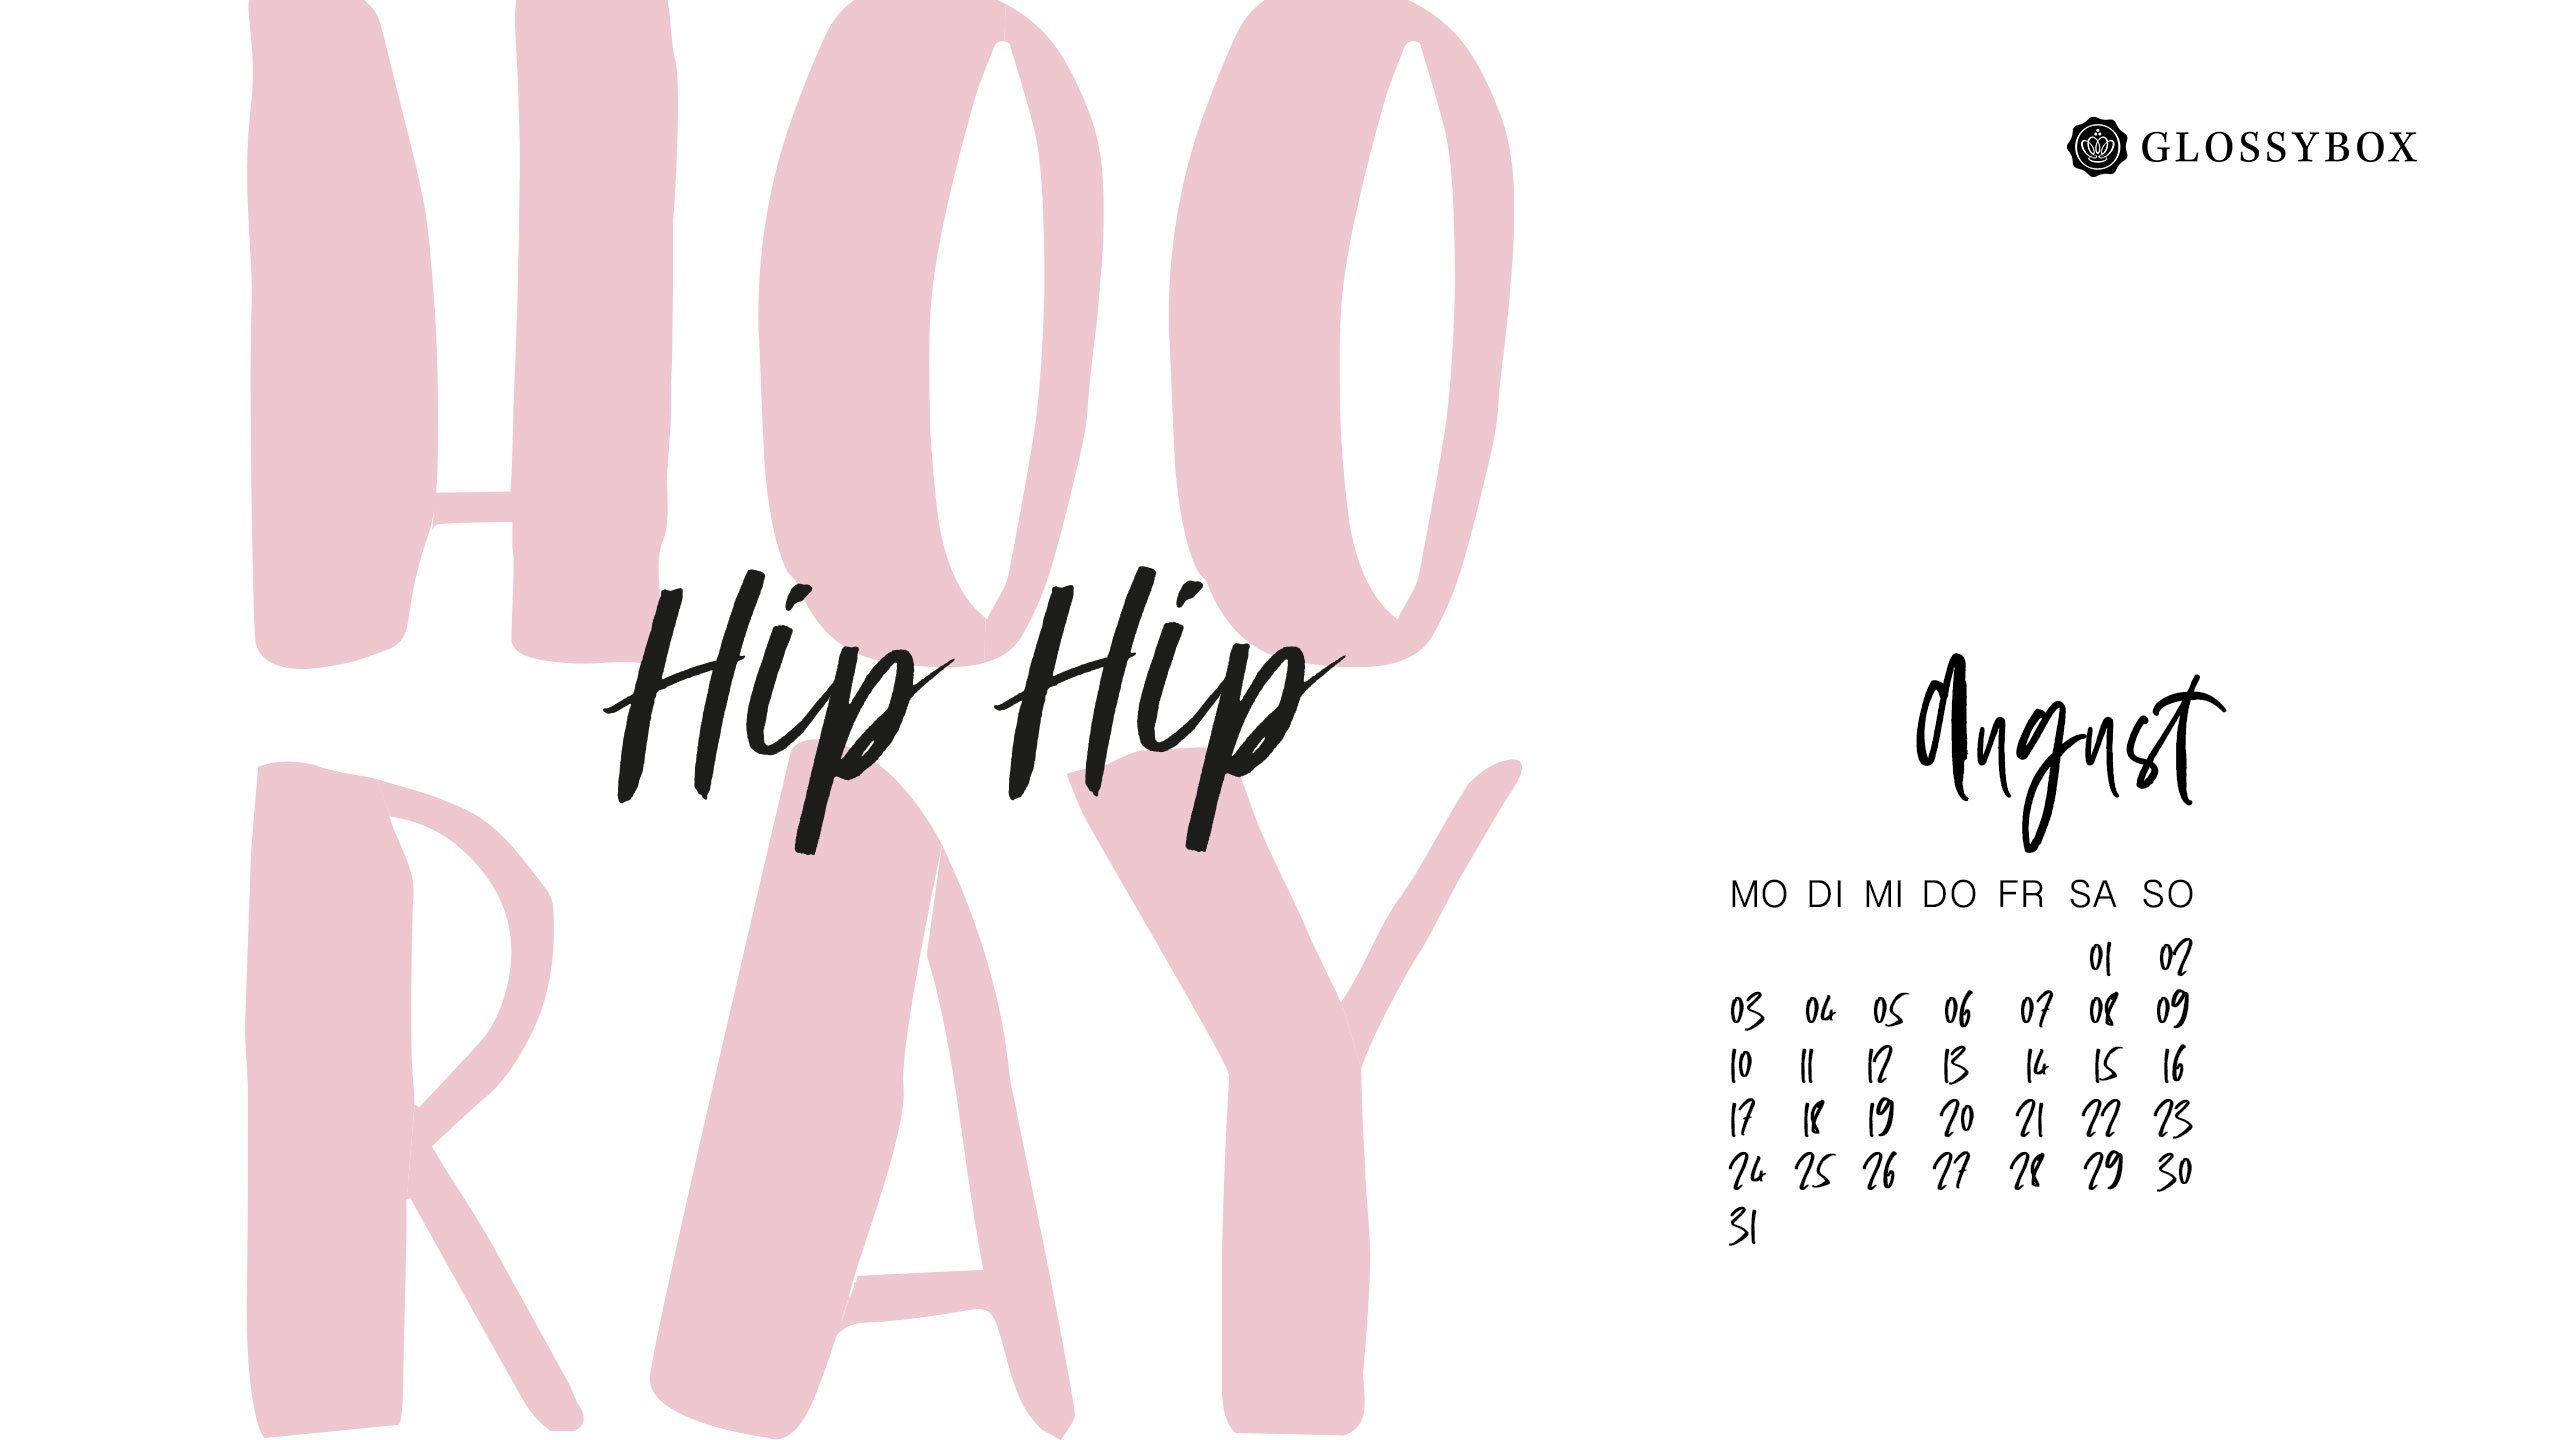 glossybox-wallpaper-august-2020-birthday